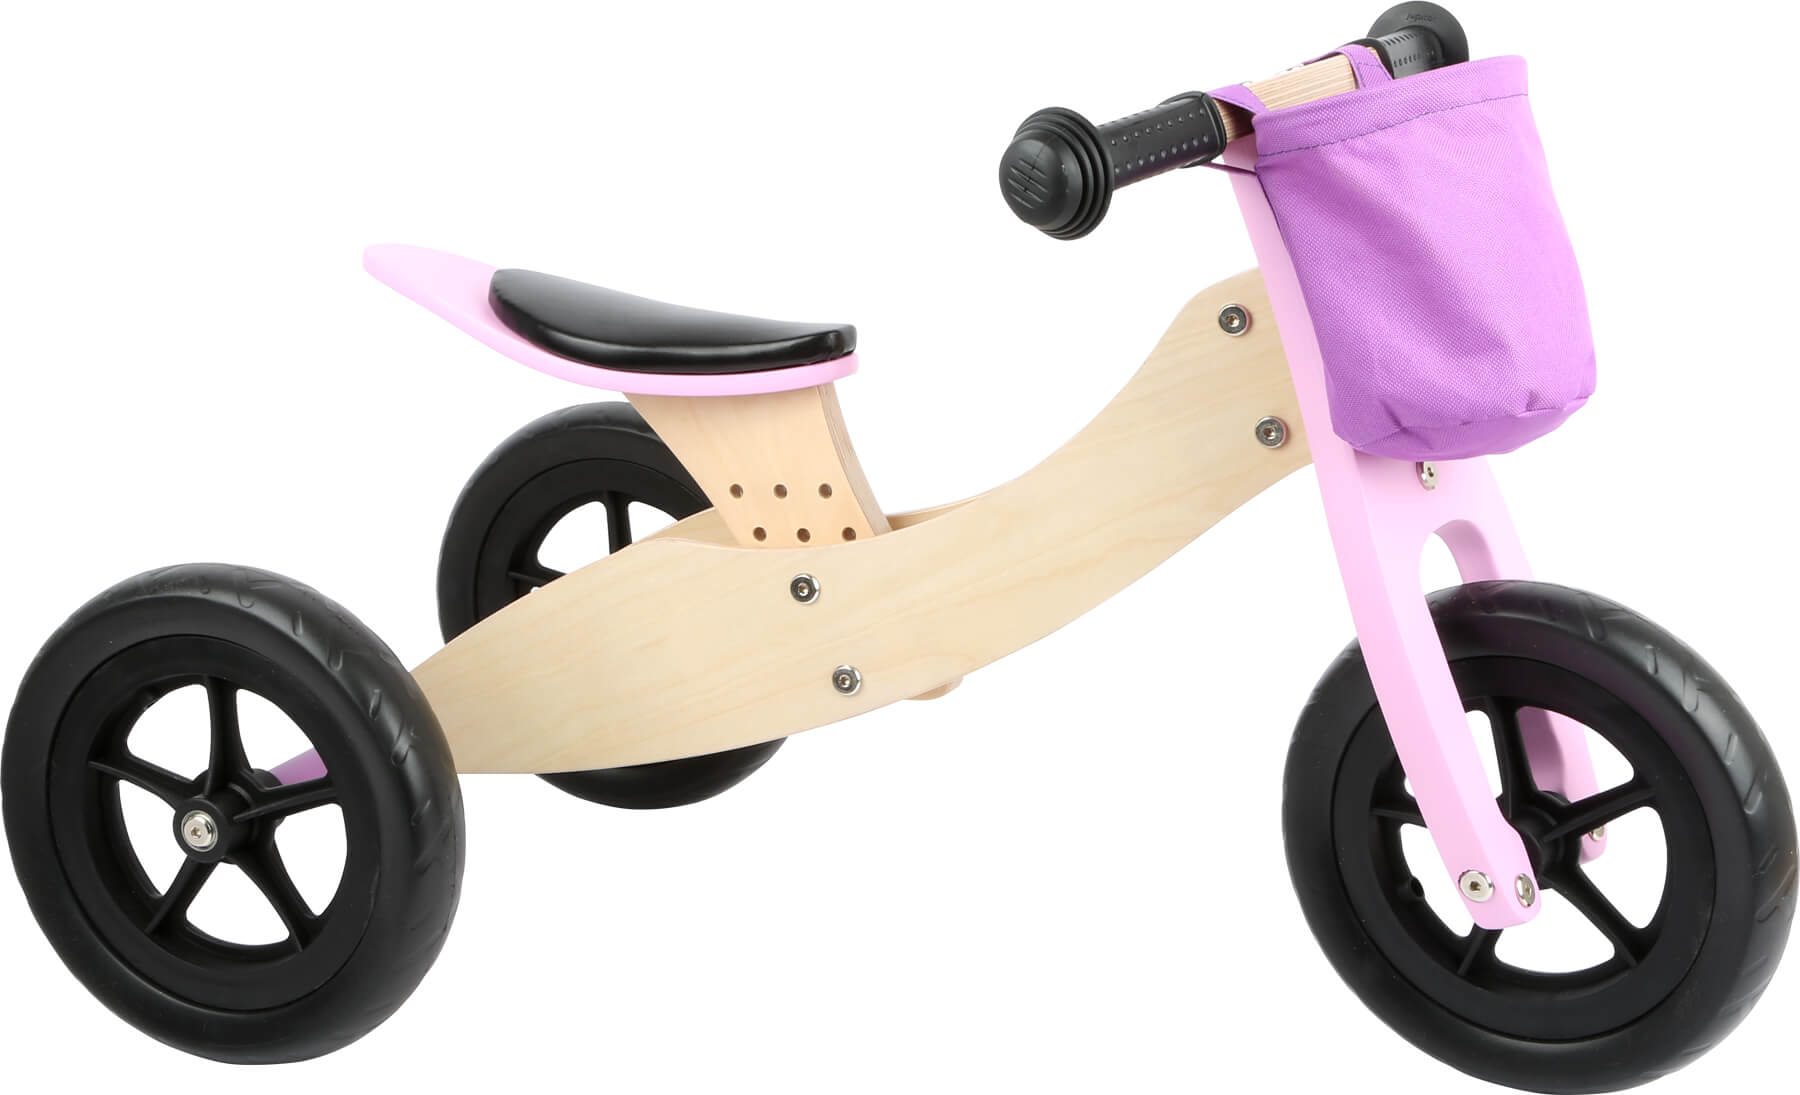 Draisienne-Tricycle 2 en 1 Maxi